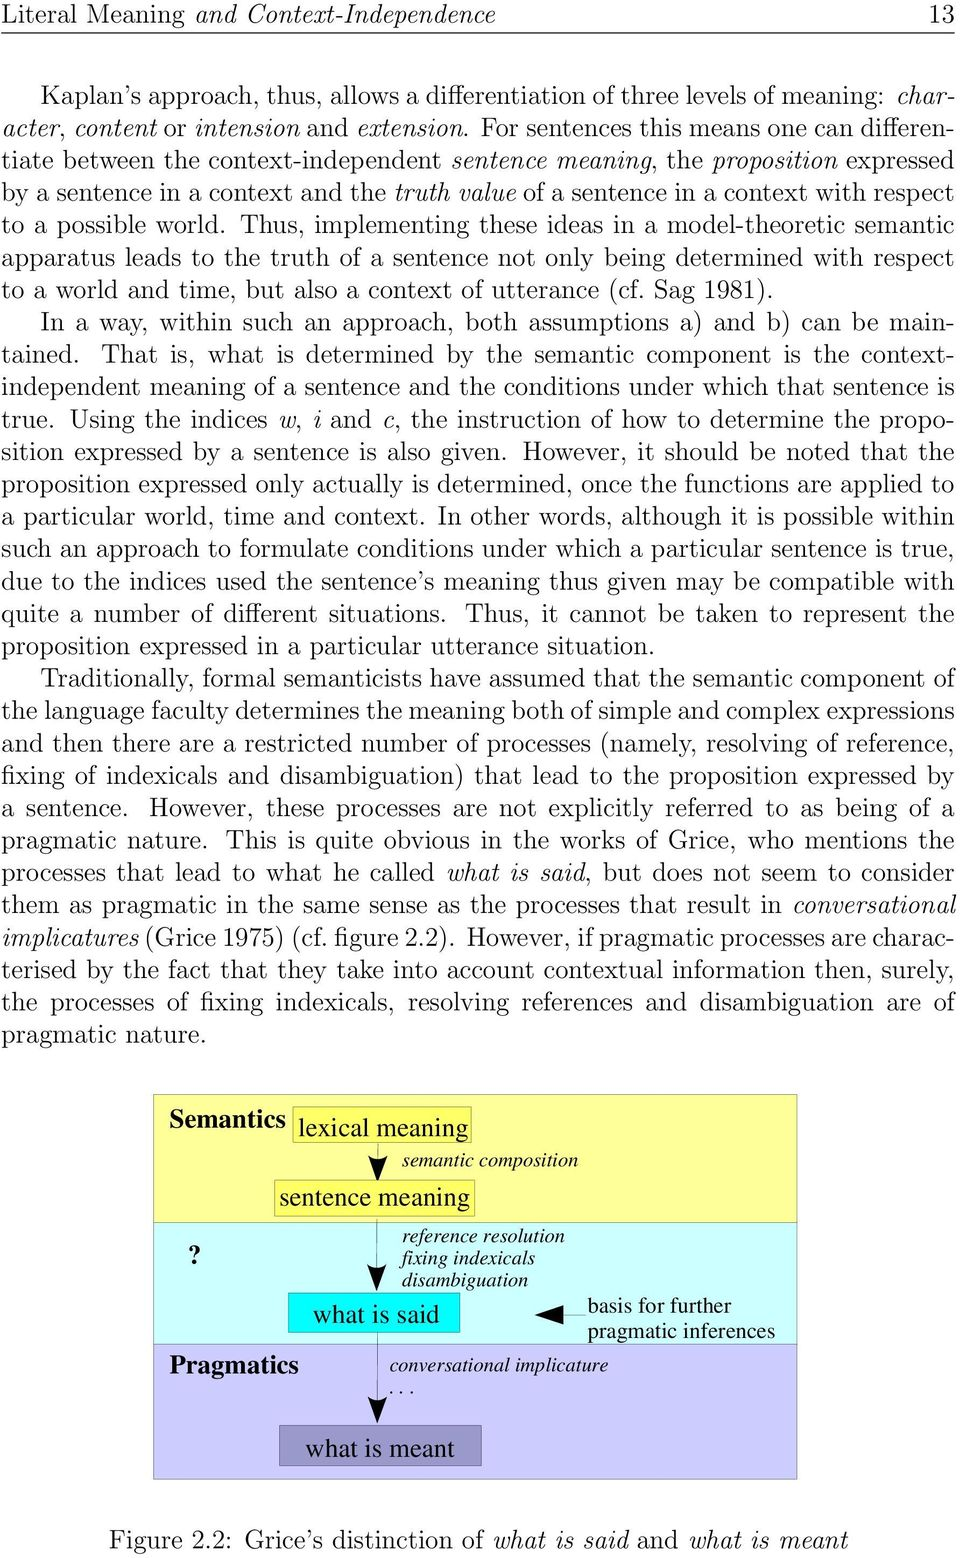 The Notions of Literal and Non-literal Meaning in Semantics and